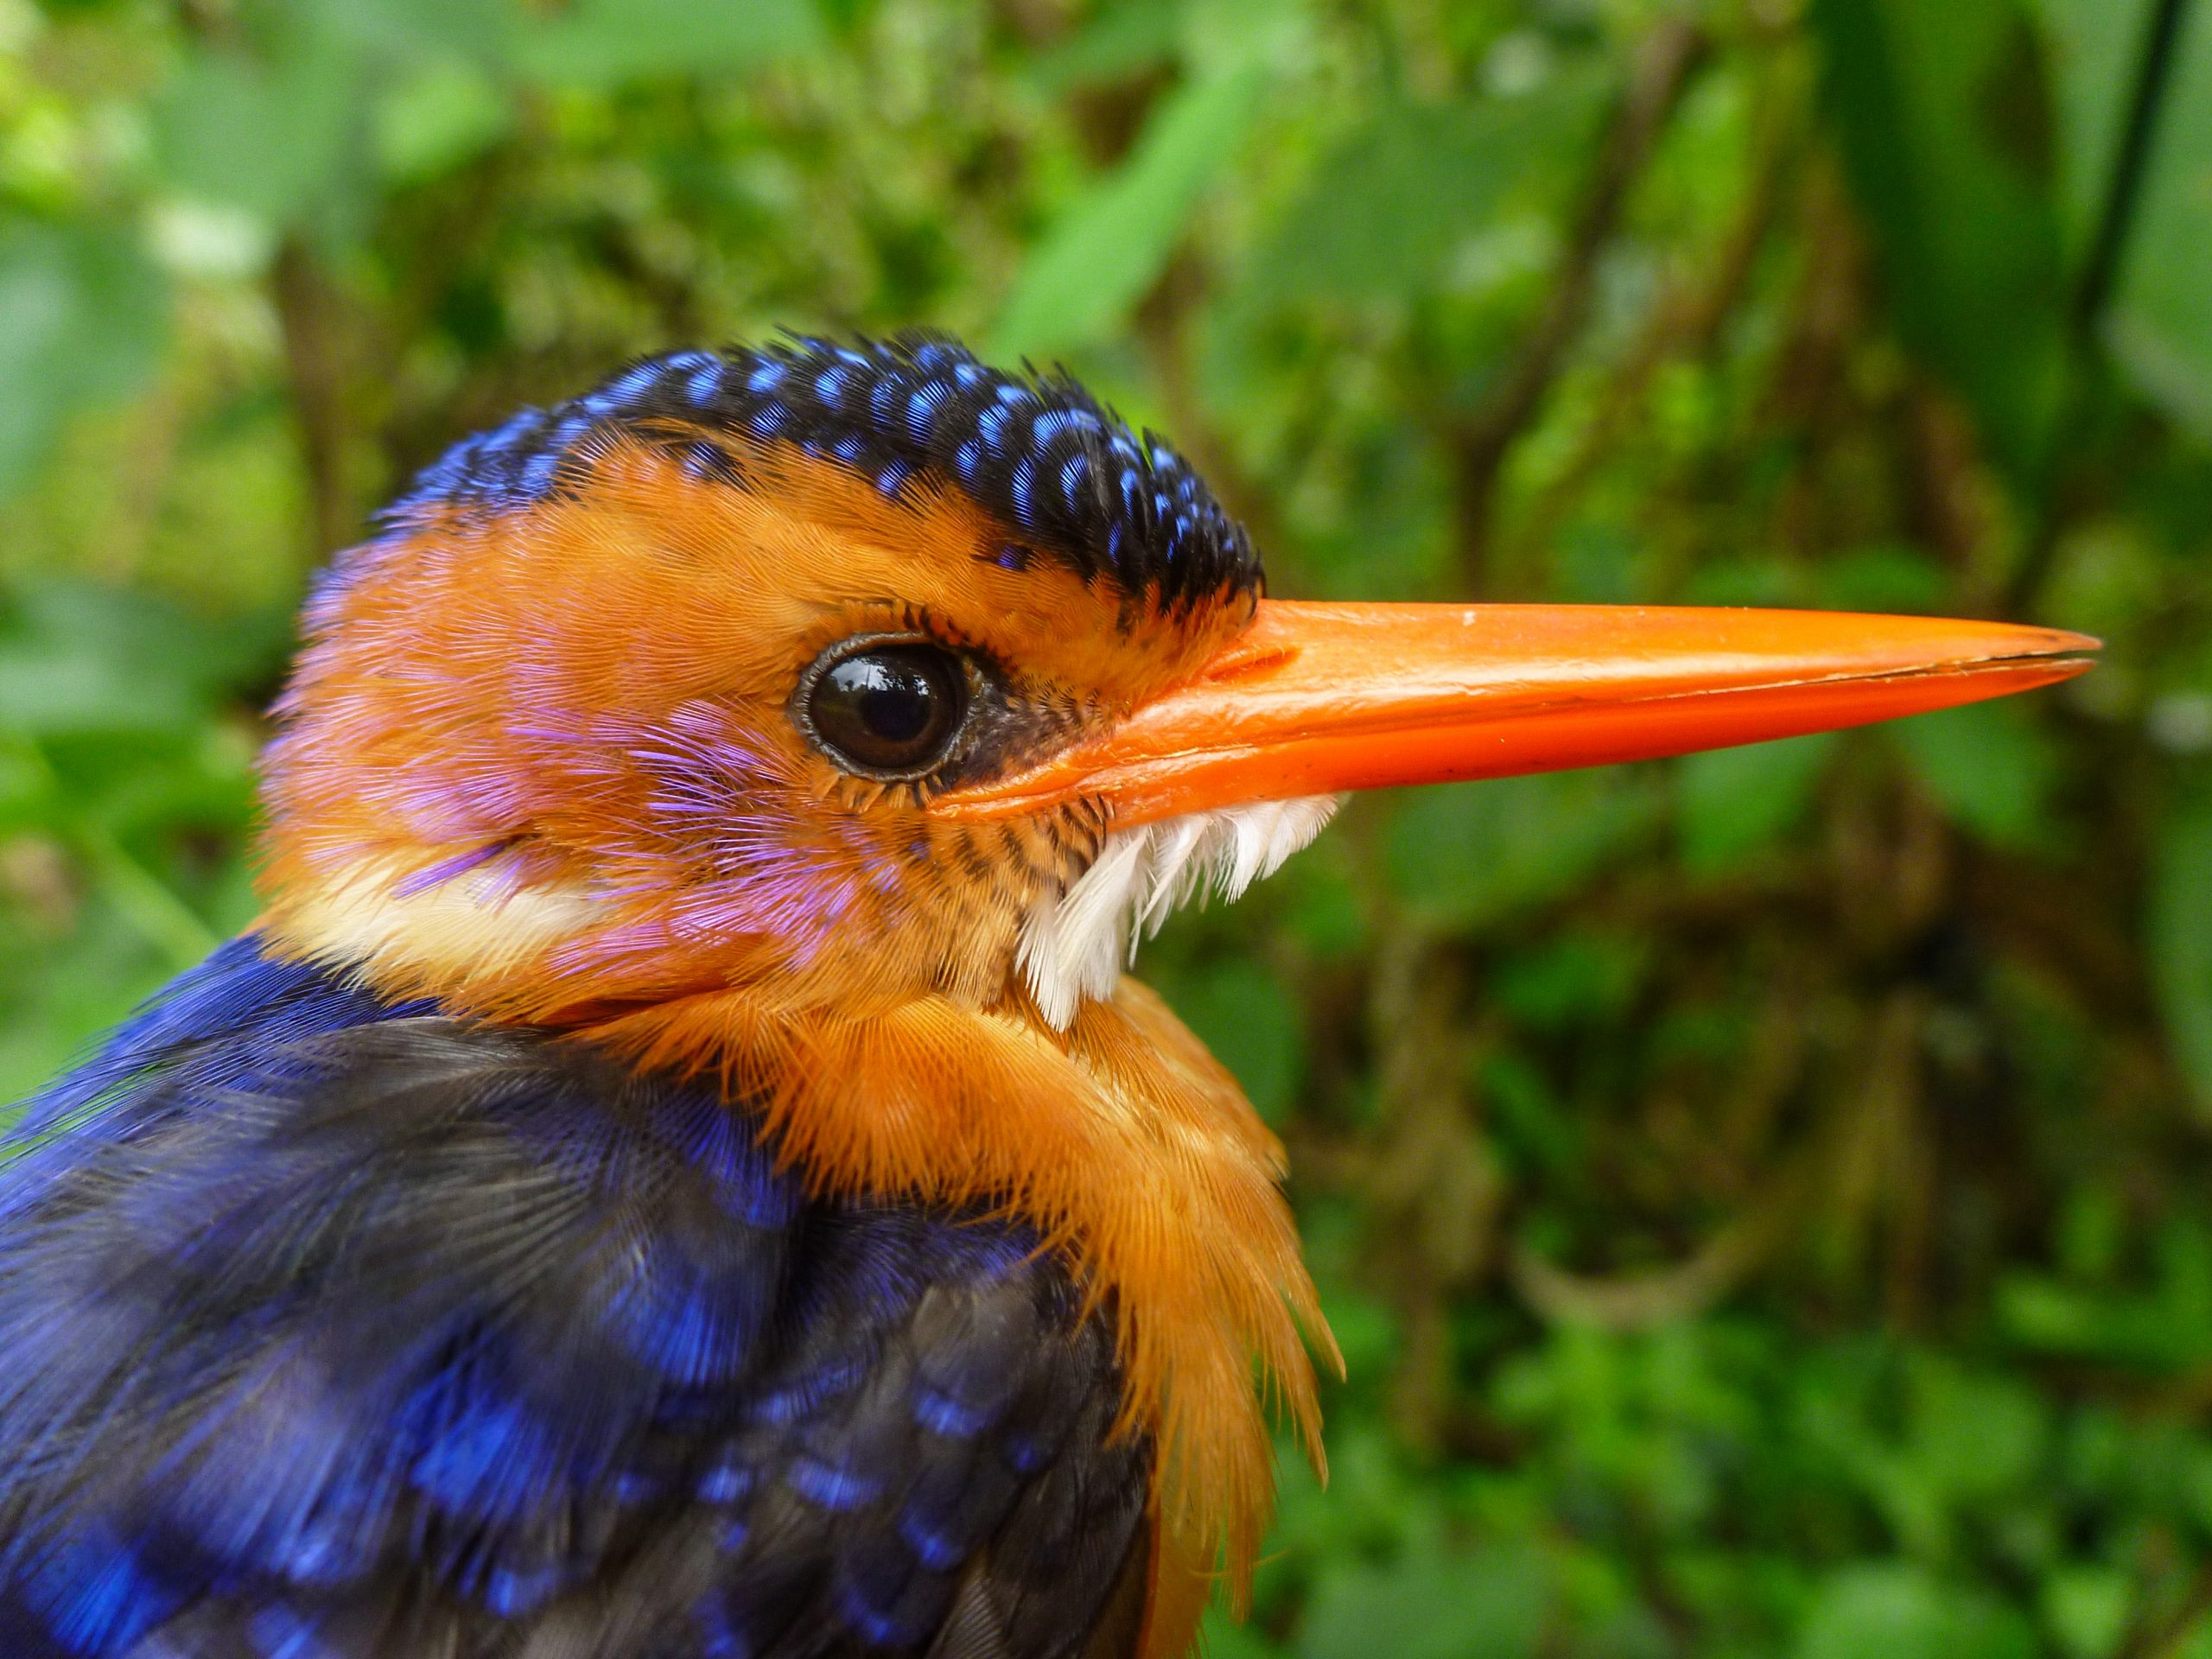 This African pygmy kingfisher is an insect-eating bird in Ethiopian forests. It was among 51 bird species netted by University of Utah researchers who found that shade coffee farms in Ethiopia – the native home of Arabica coffee – are good for birds, but that some species do best in forest.